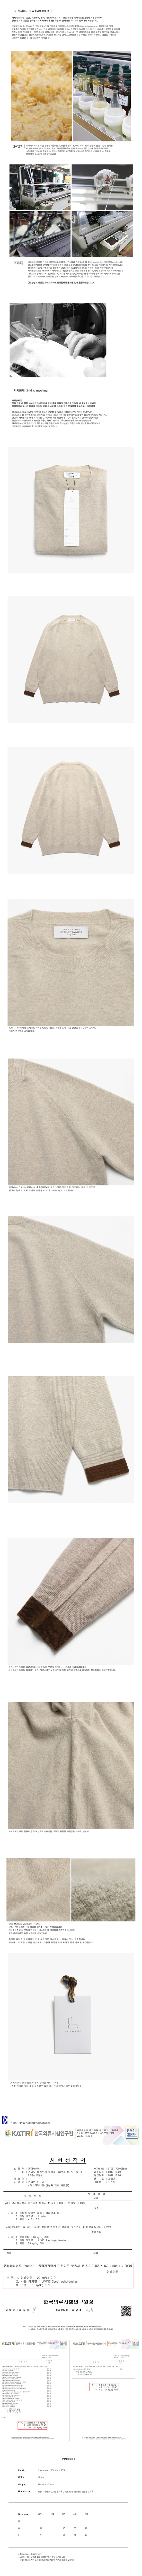 Line_Cashmere_Round_knit_Percell_02.jpg